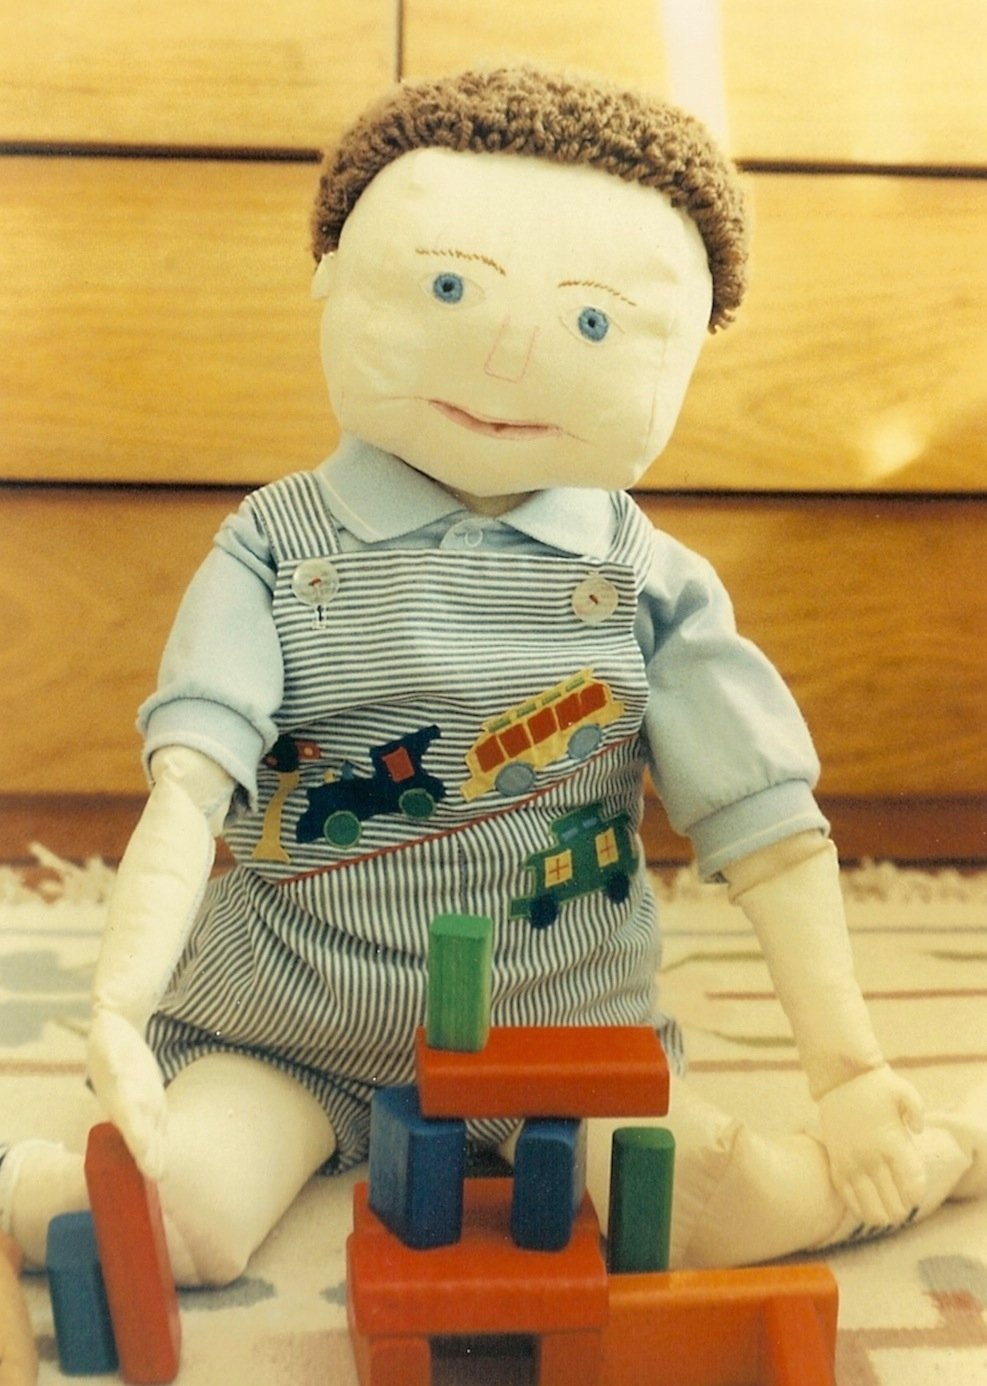 Dolls I Designed as Child Life Tools: Timothy, a teaching tool for Child Life, of my design 1980s